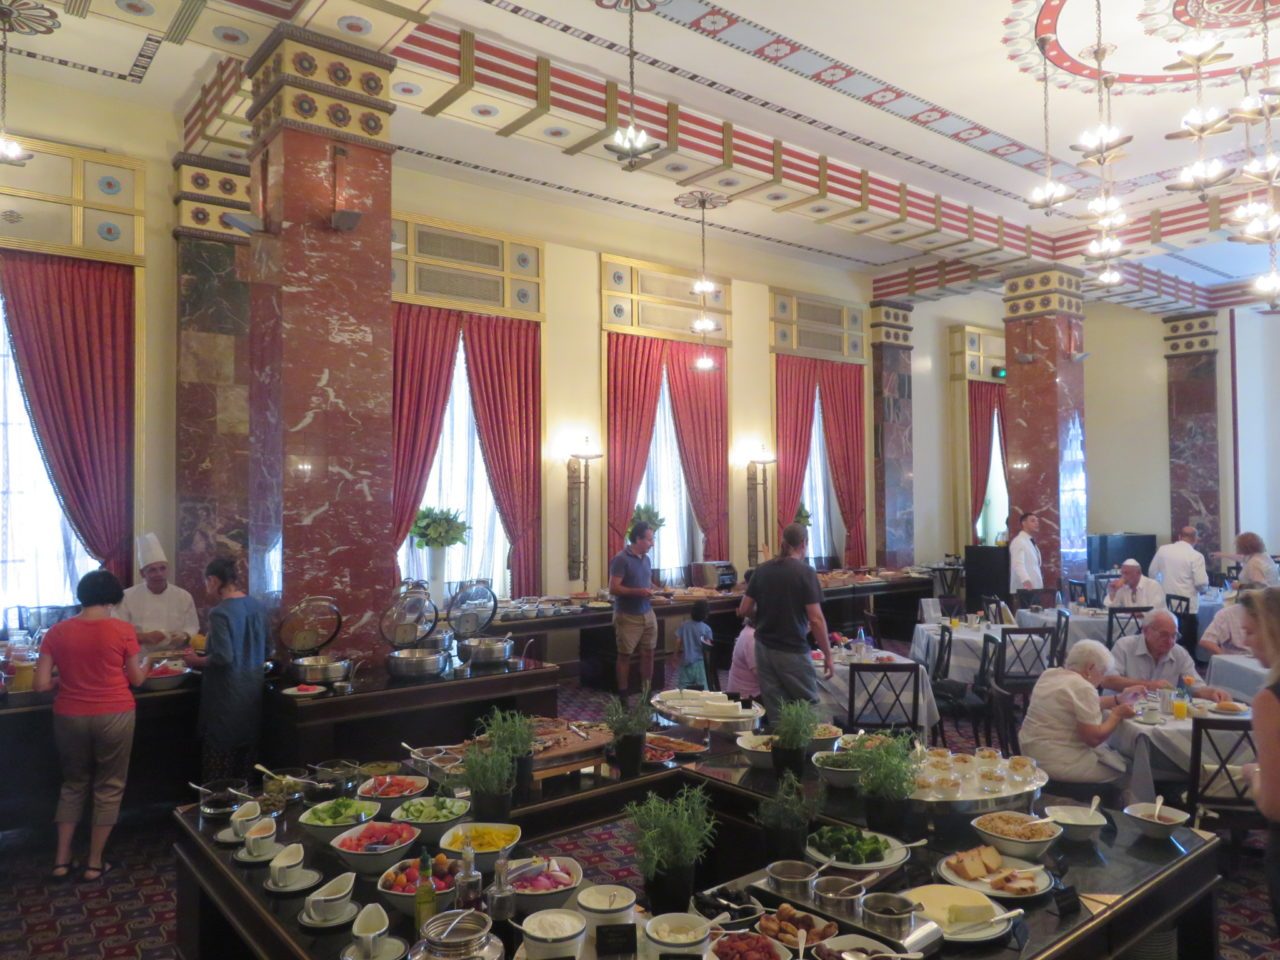 King David Hotel, Jerusalem Israel - Breakfast Buffet in President's Hall